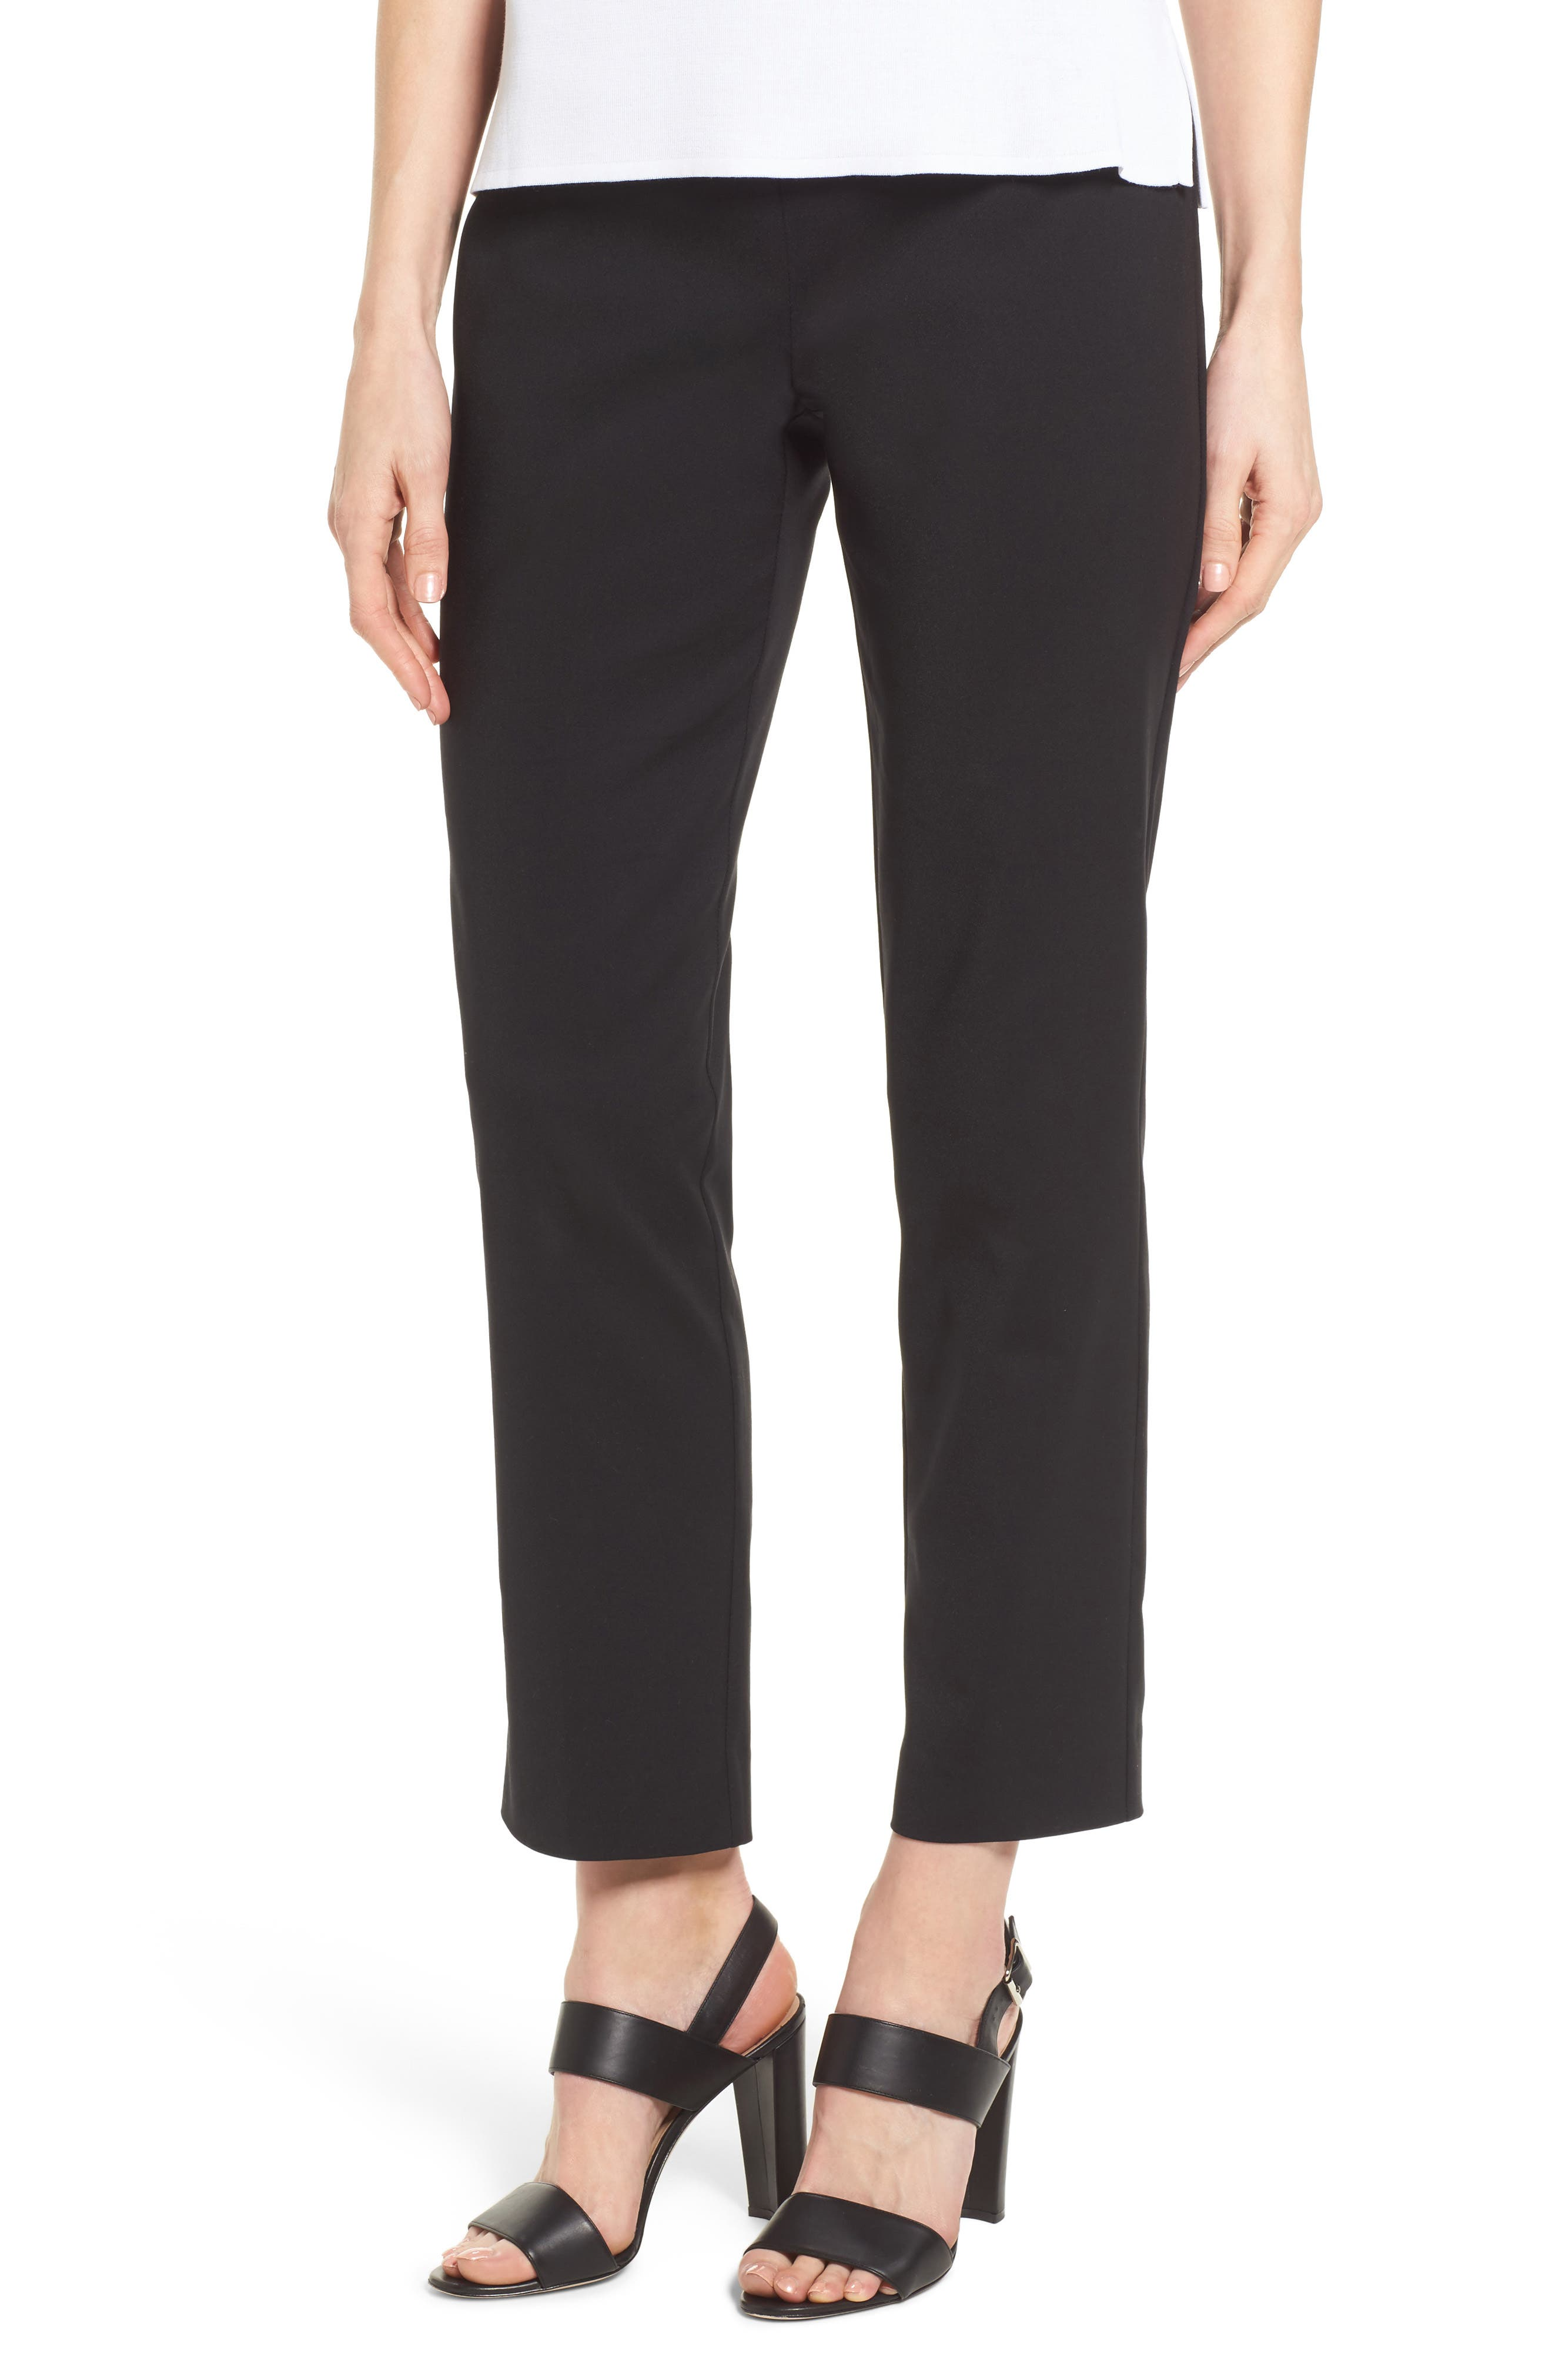 Ming Want Pull-On Ankle Pants,                             Main thumbnail 1, color,                             Black